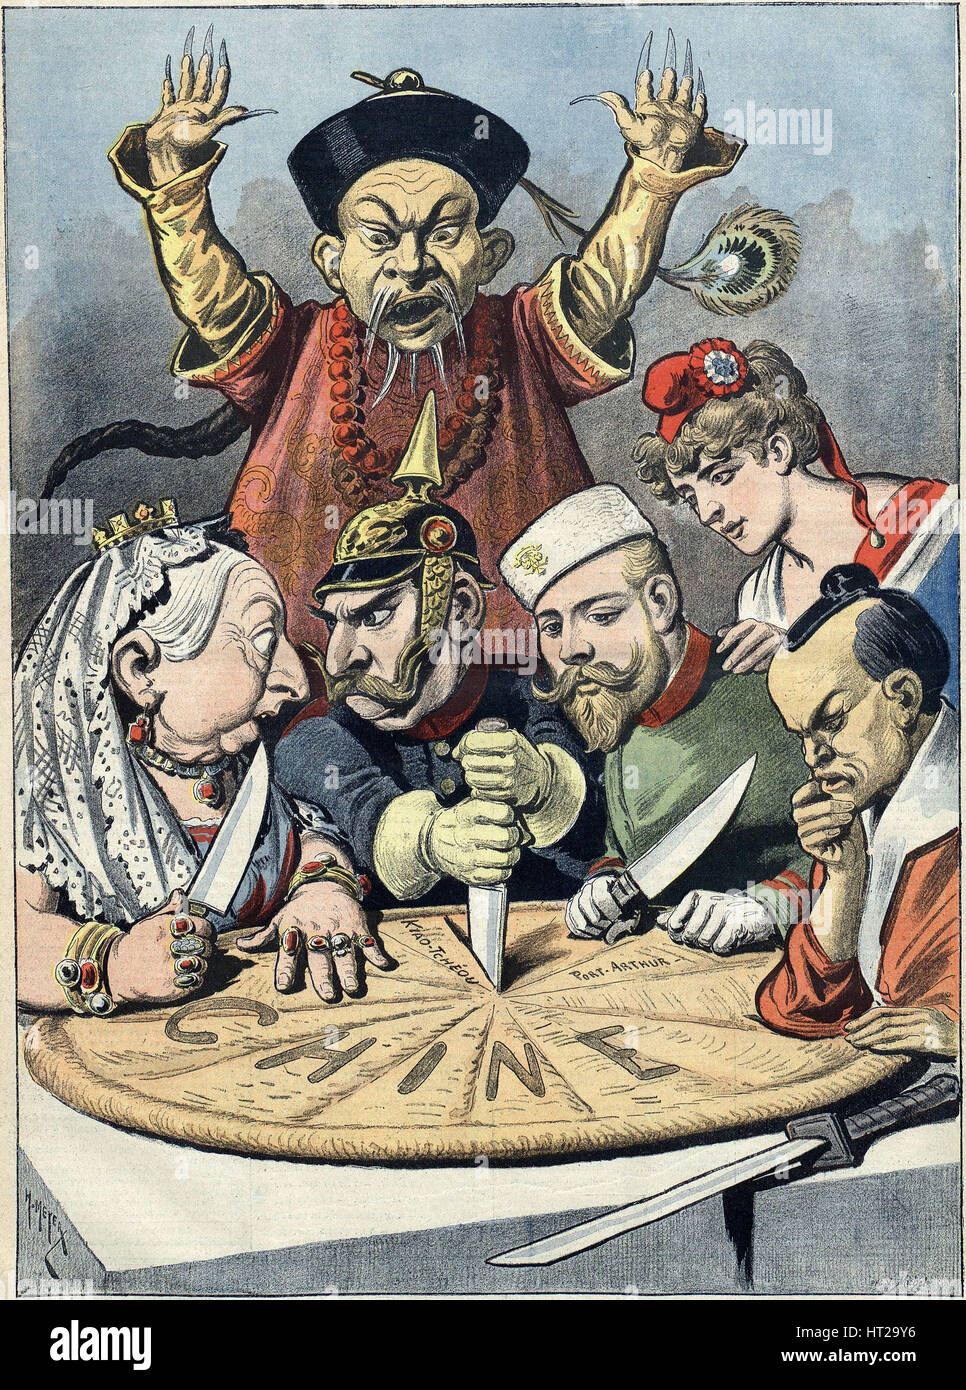 China - the cake of kings and... of emperors (Caricature), 1898. Artist: Meyer (Reyem), Henri (1844-1899) - Stock Image